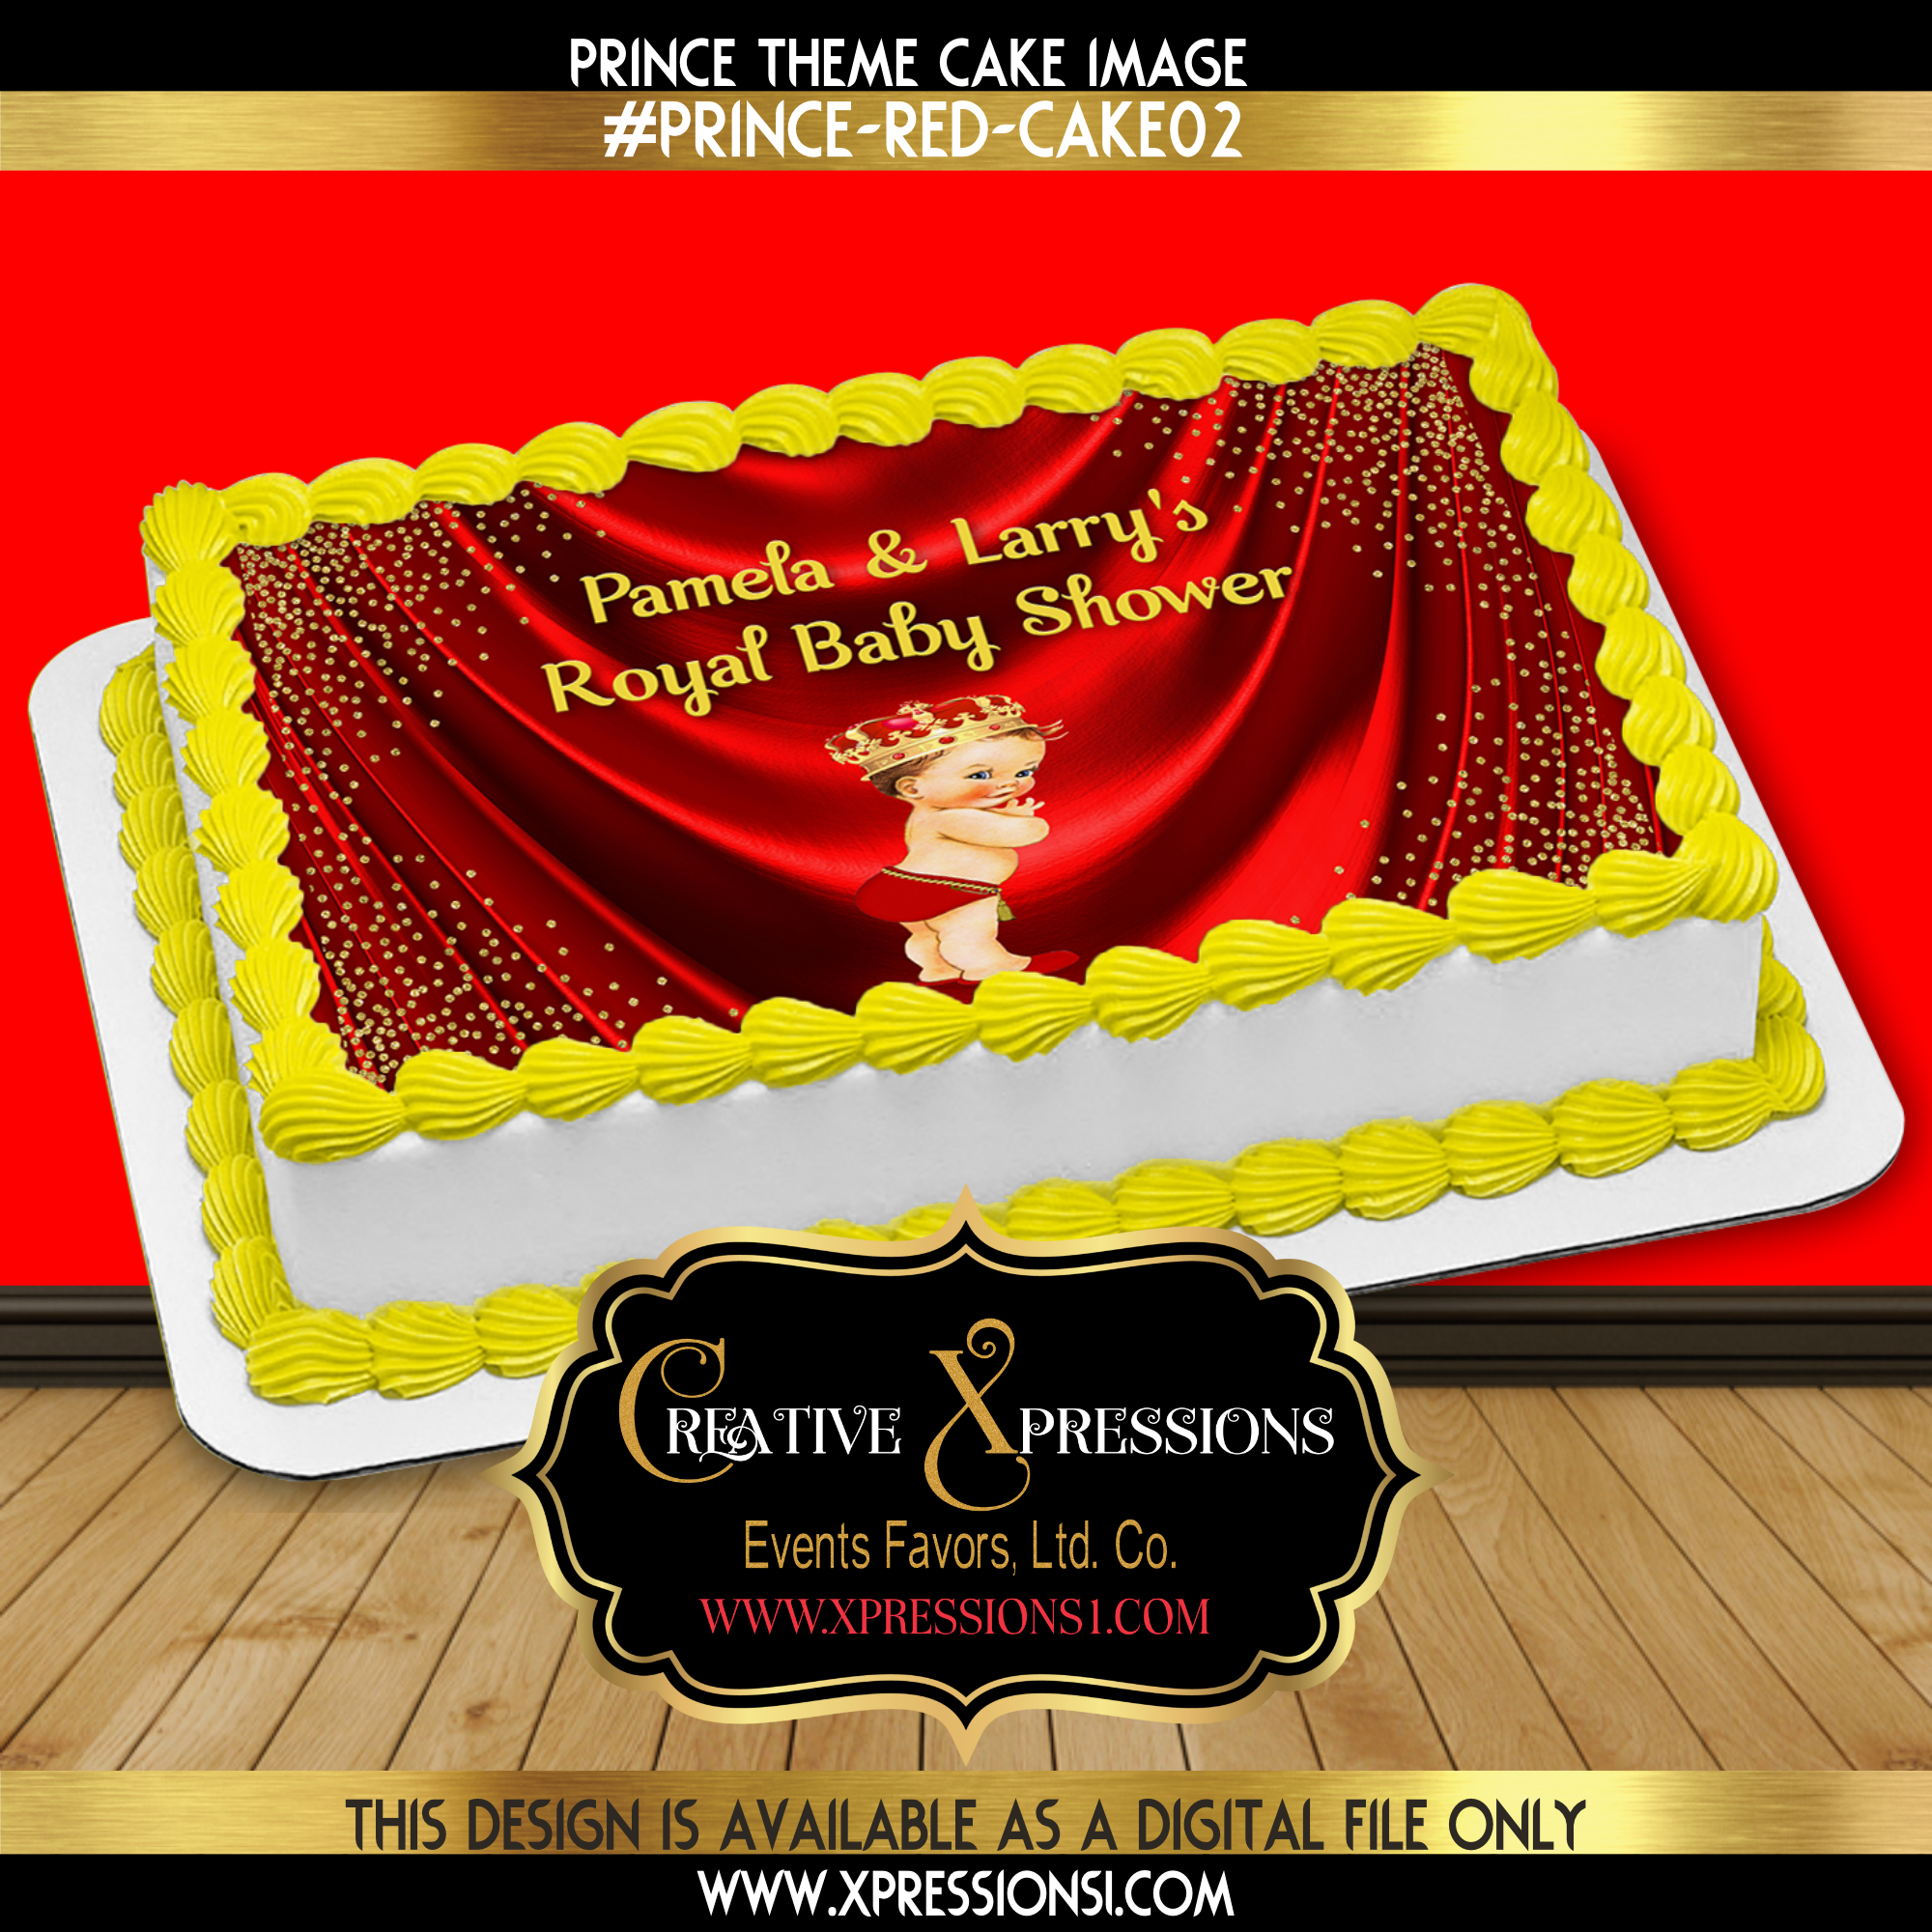 Royal Prince with Glitter Cake Image